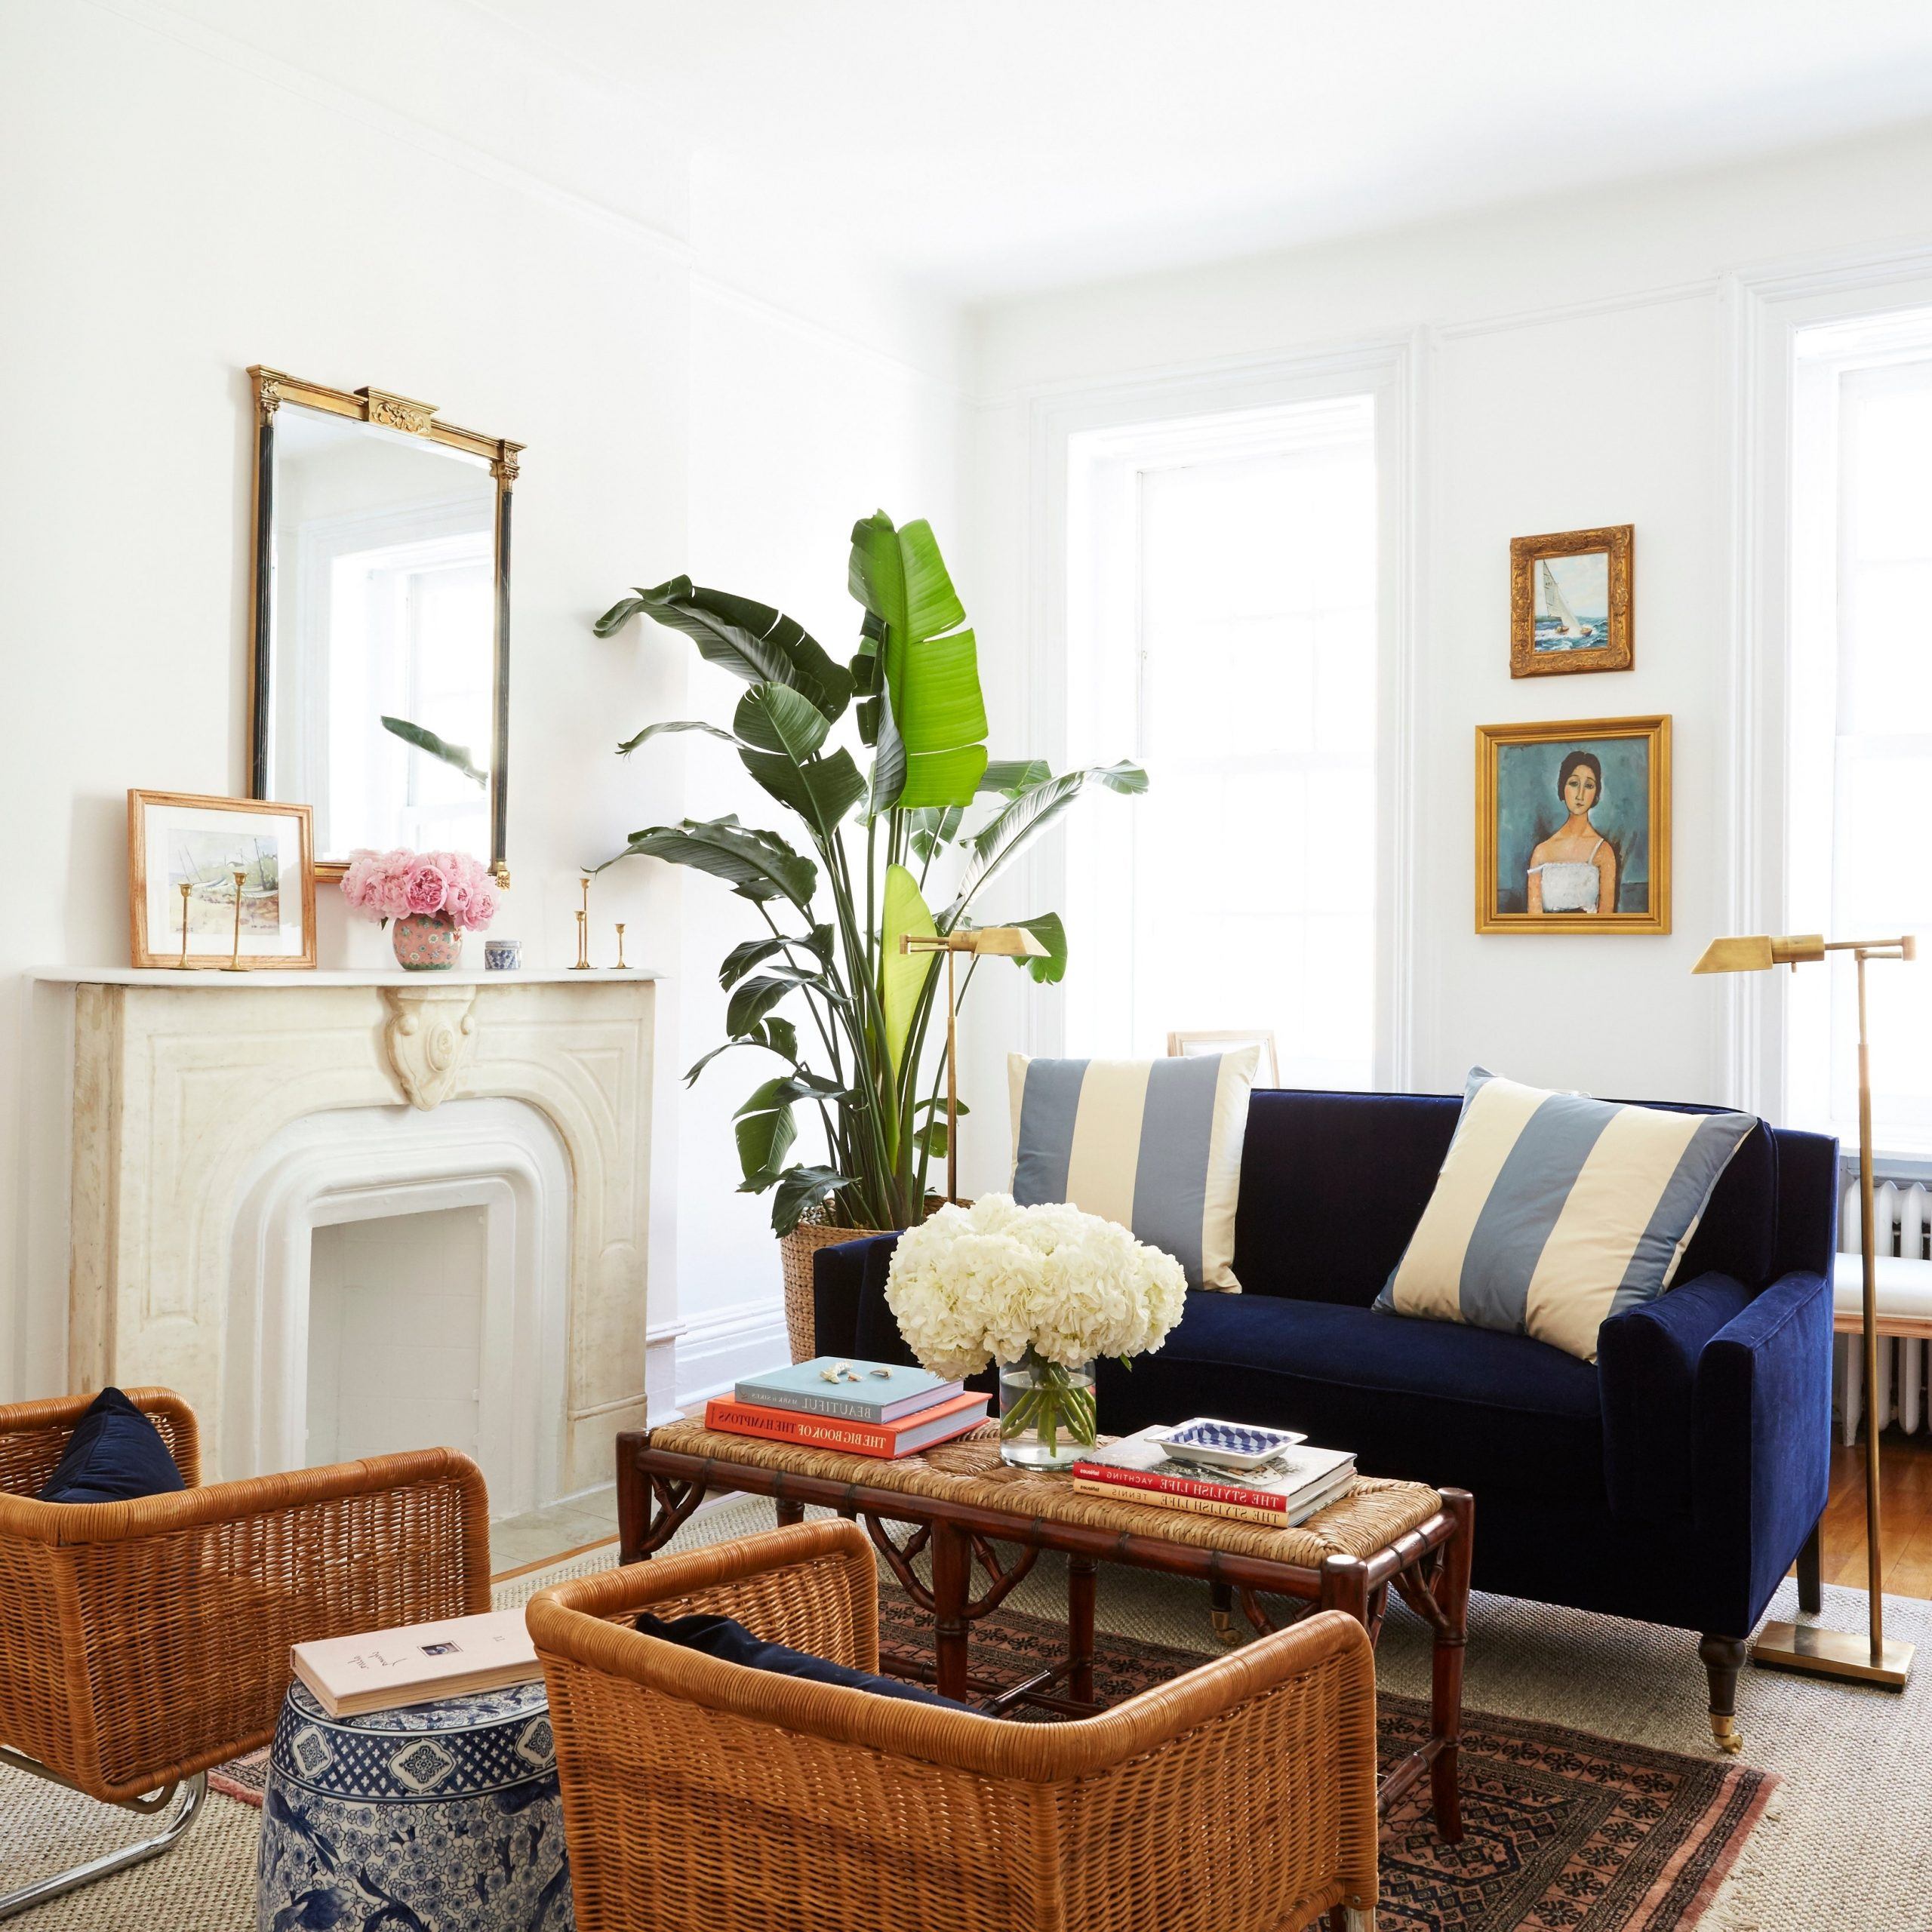 8 Small Living Room Ideas That Will Maximize Your Space 14X12 Living Room